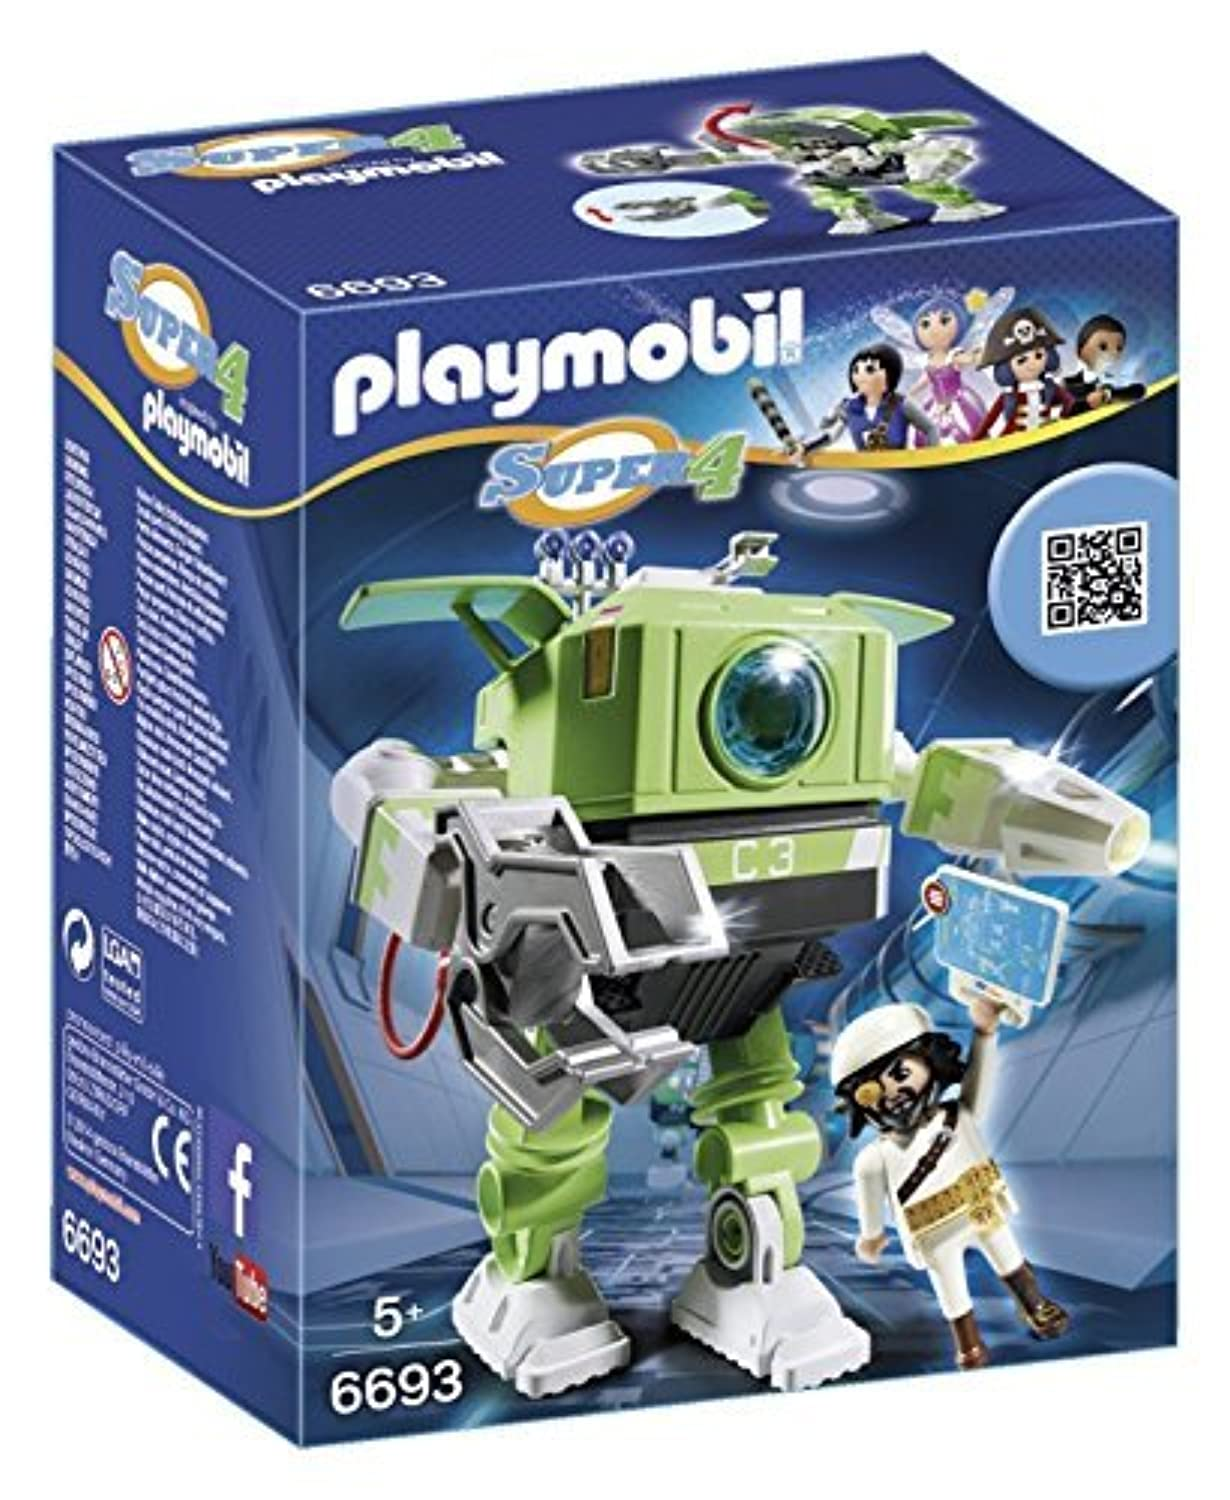 Playmobil 6693 Super 4 Technopolis Cleano by Playmobil UK Limited [並行輸入品]